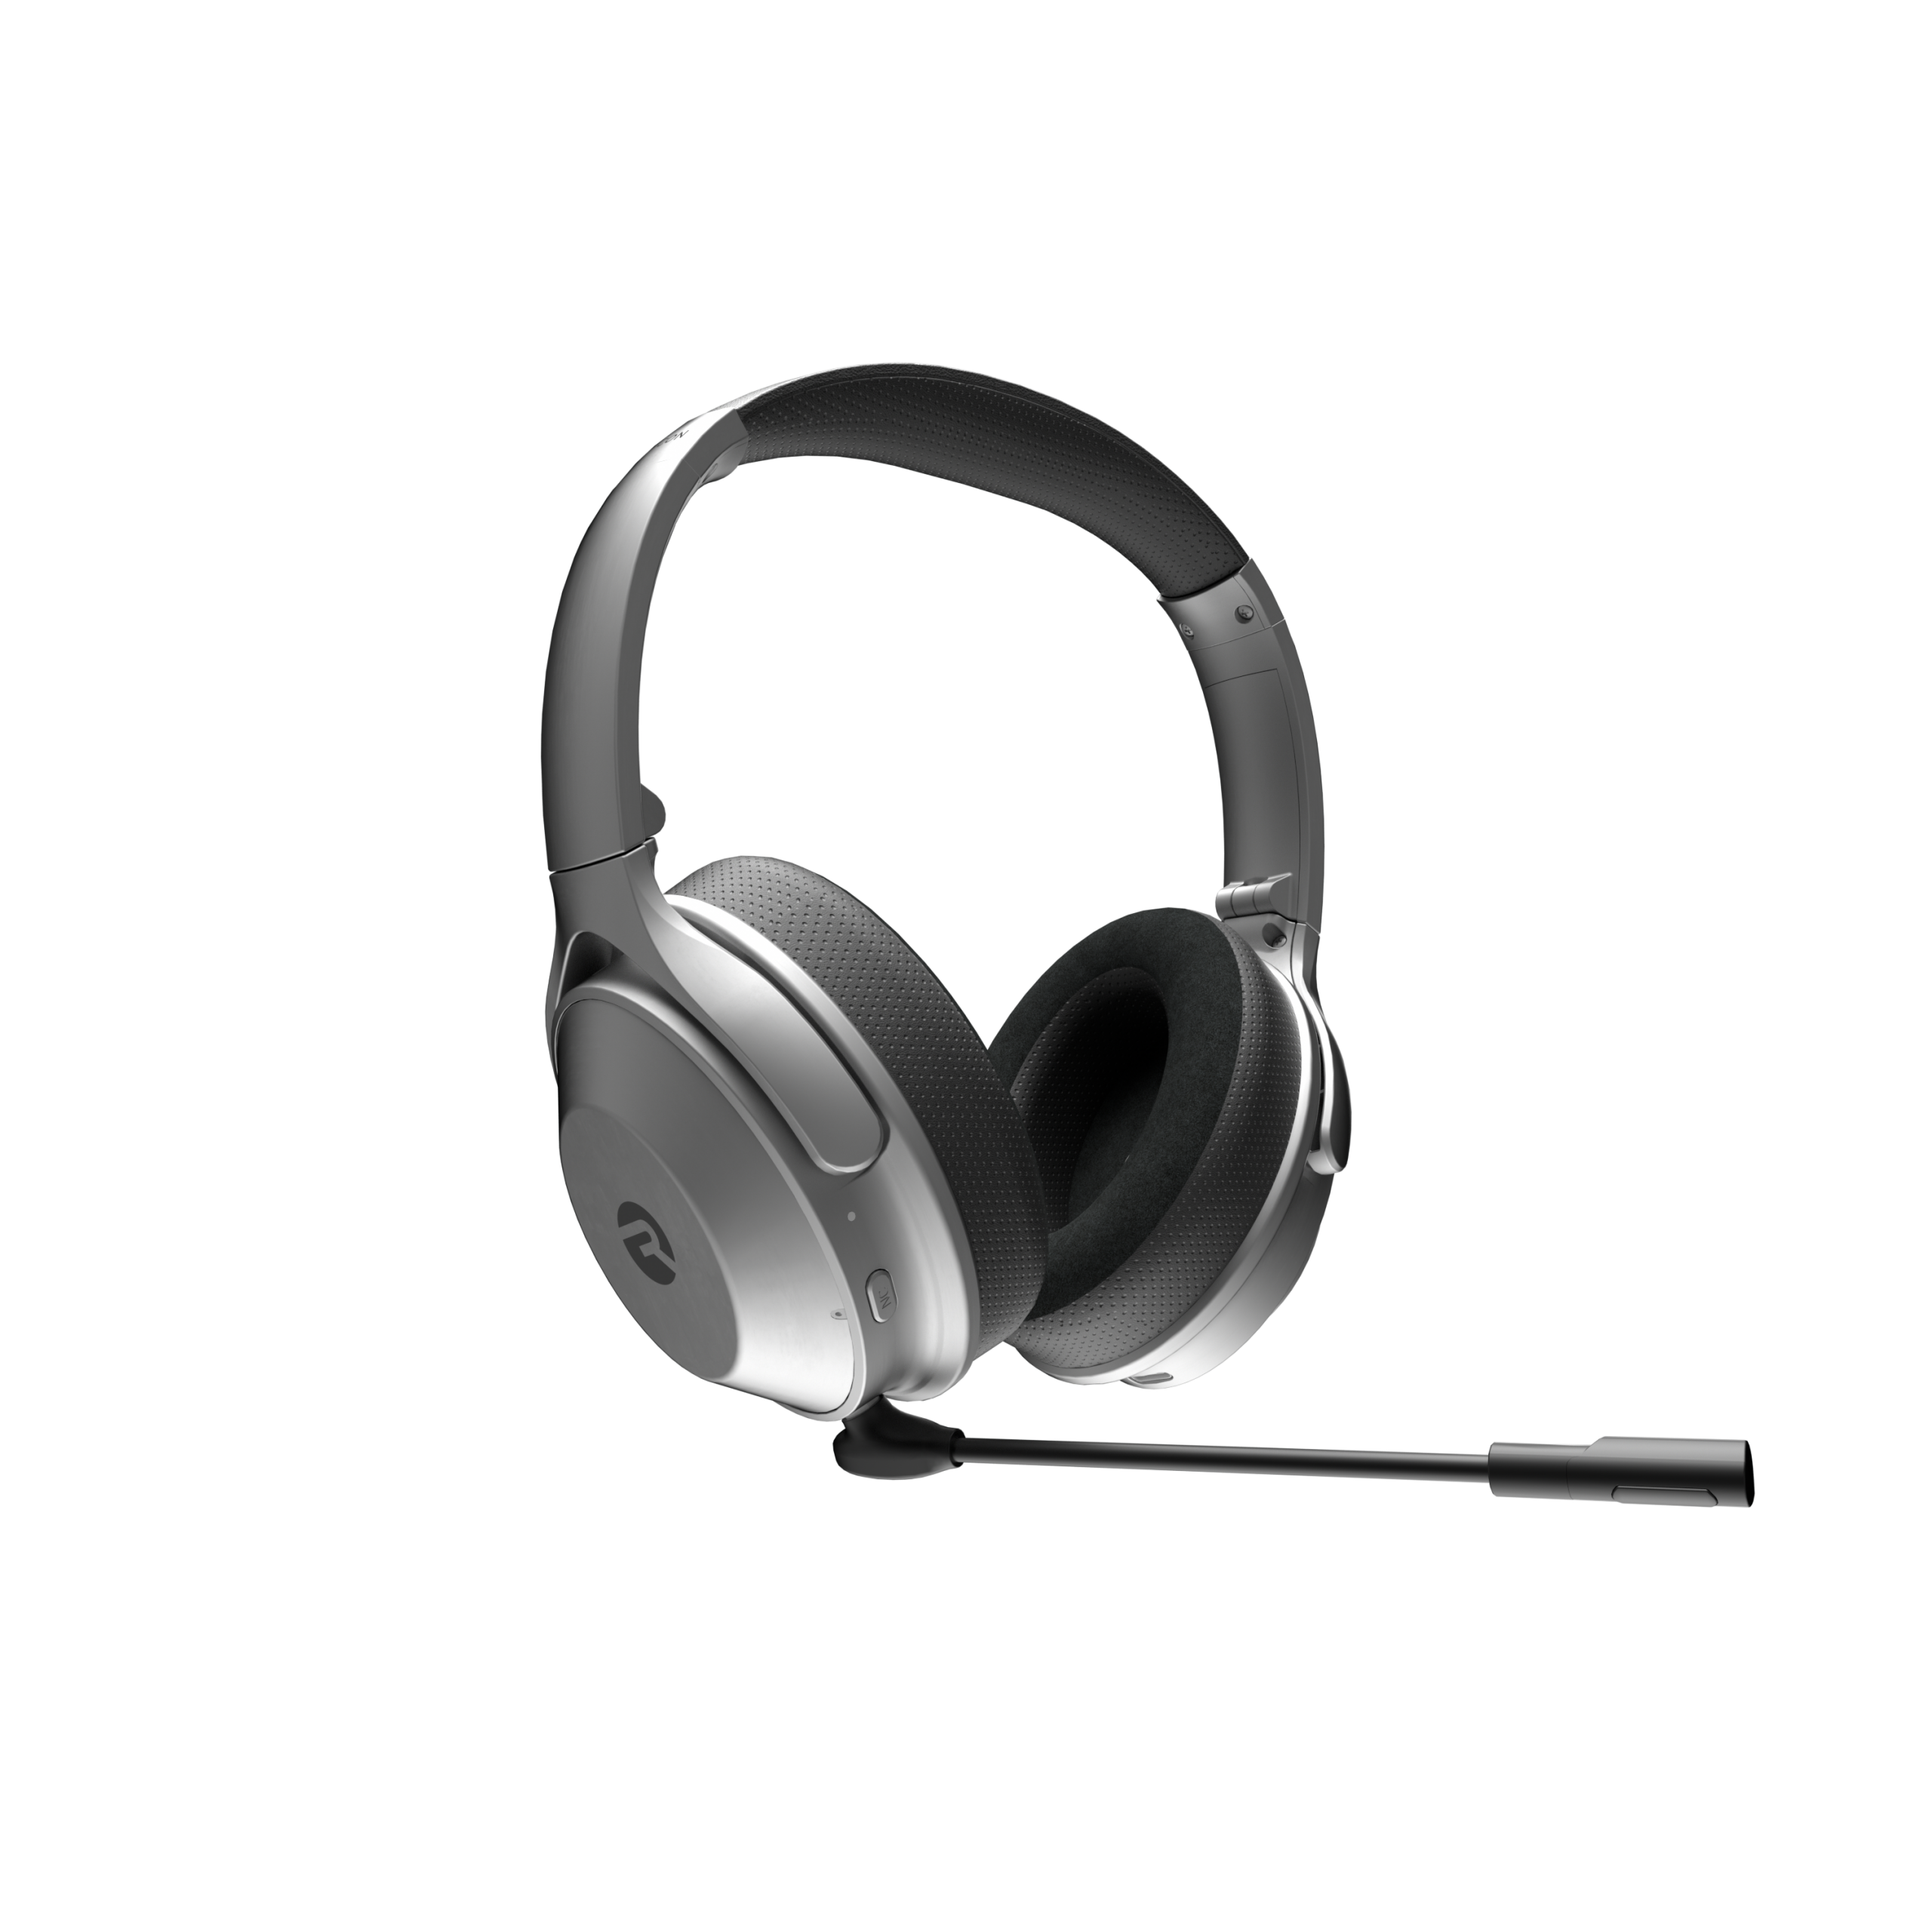 Remote work devices: A picture of the Work Headphones with detachable boom mic.